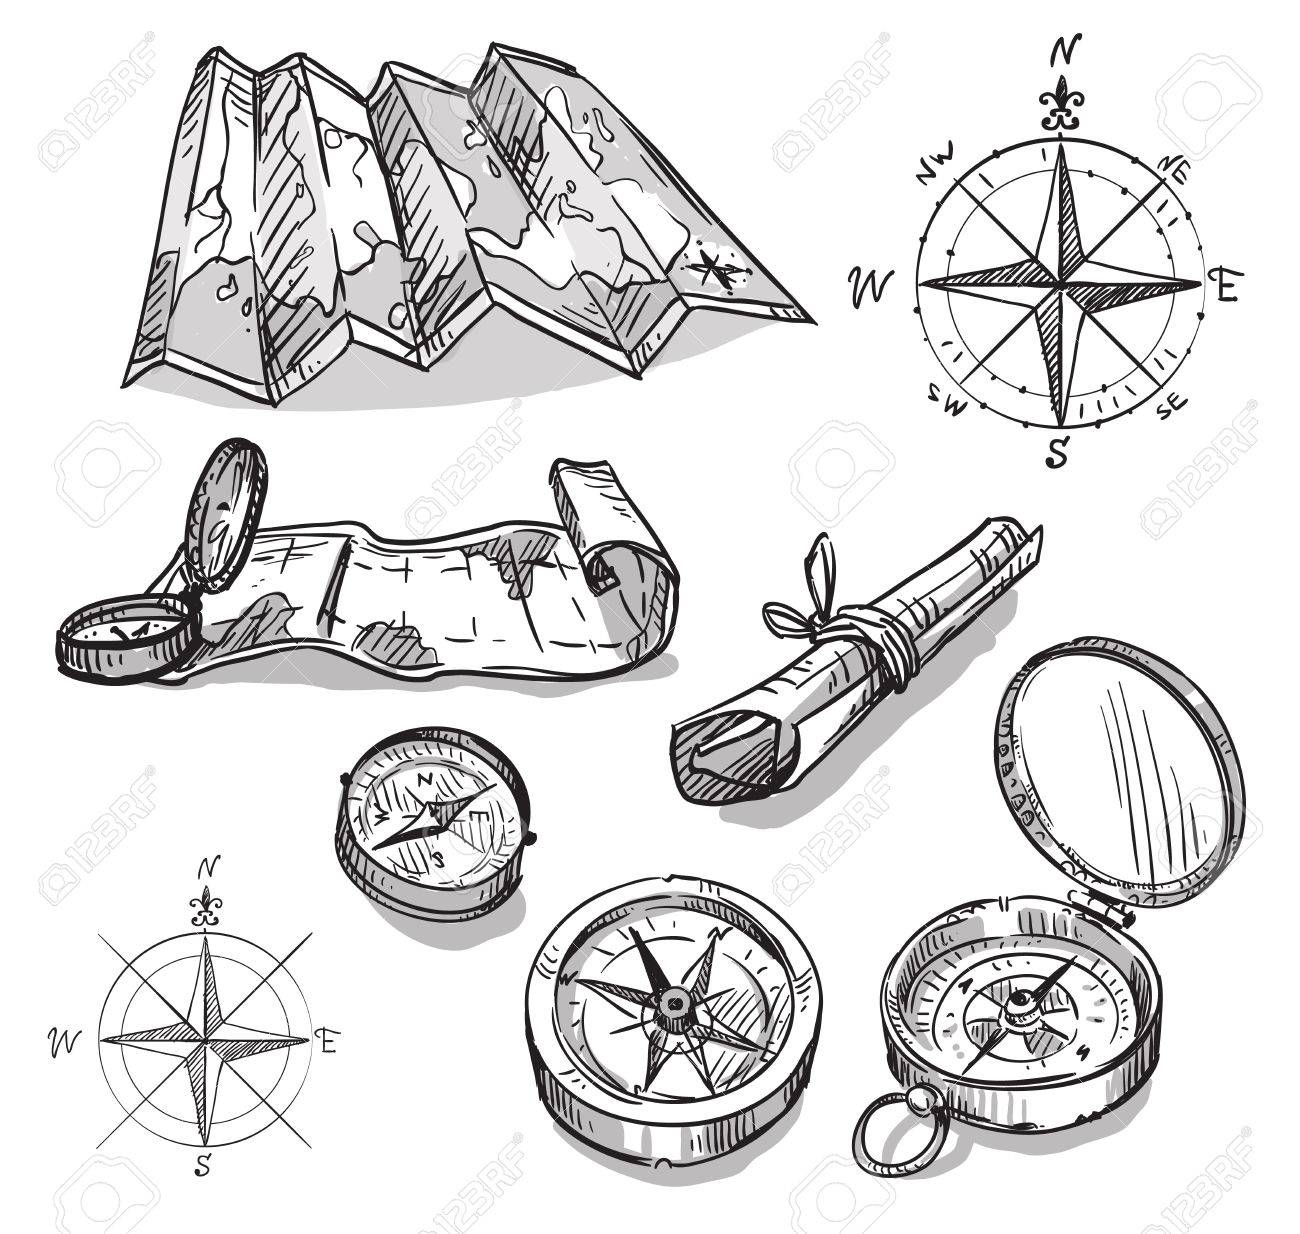 Set Of Hand Drawn Compasses And Maps Royalty Free Cliparts ...